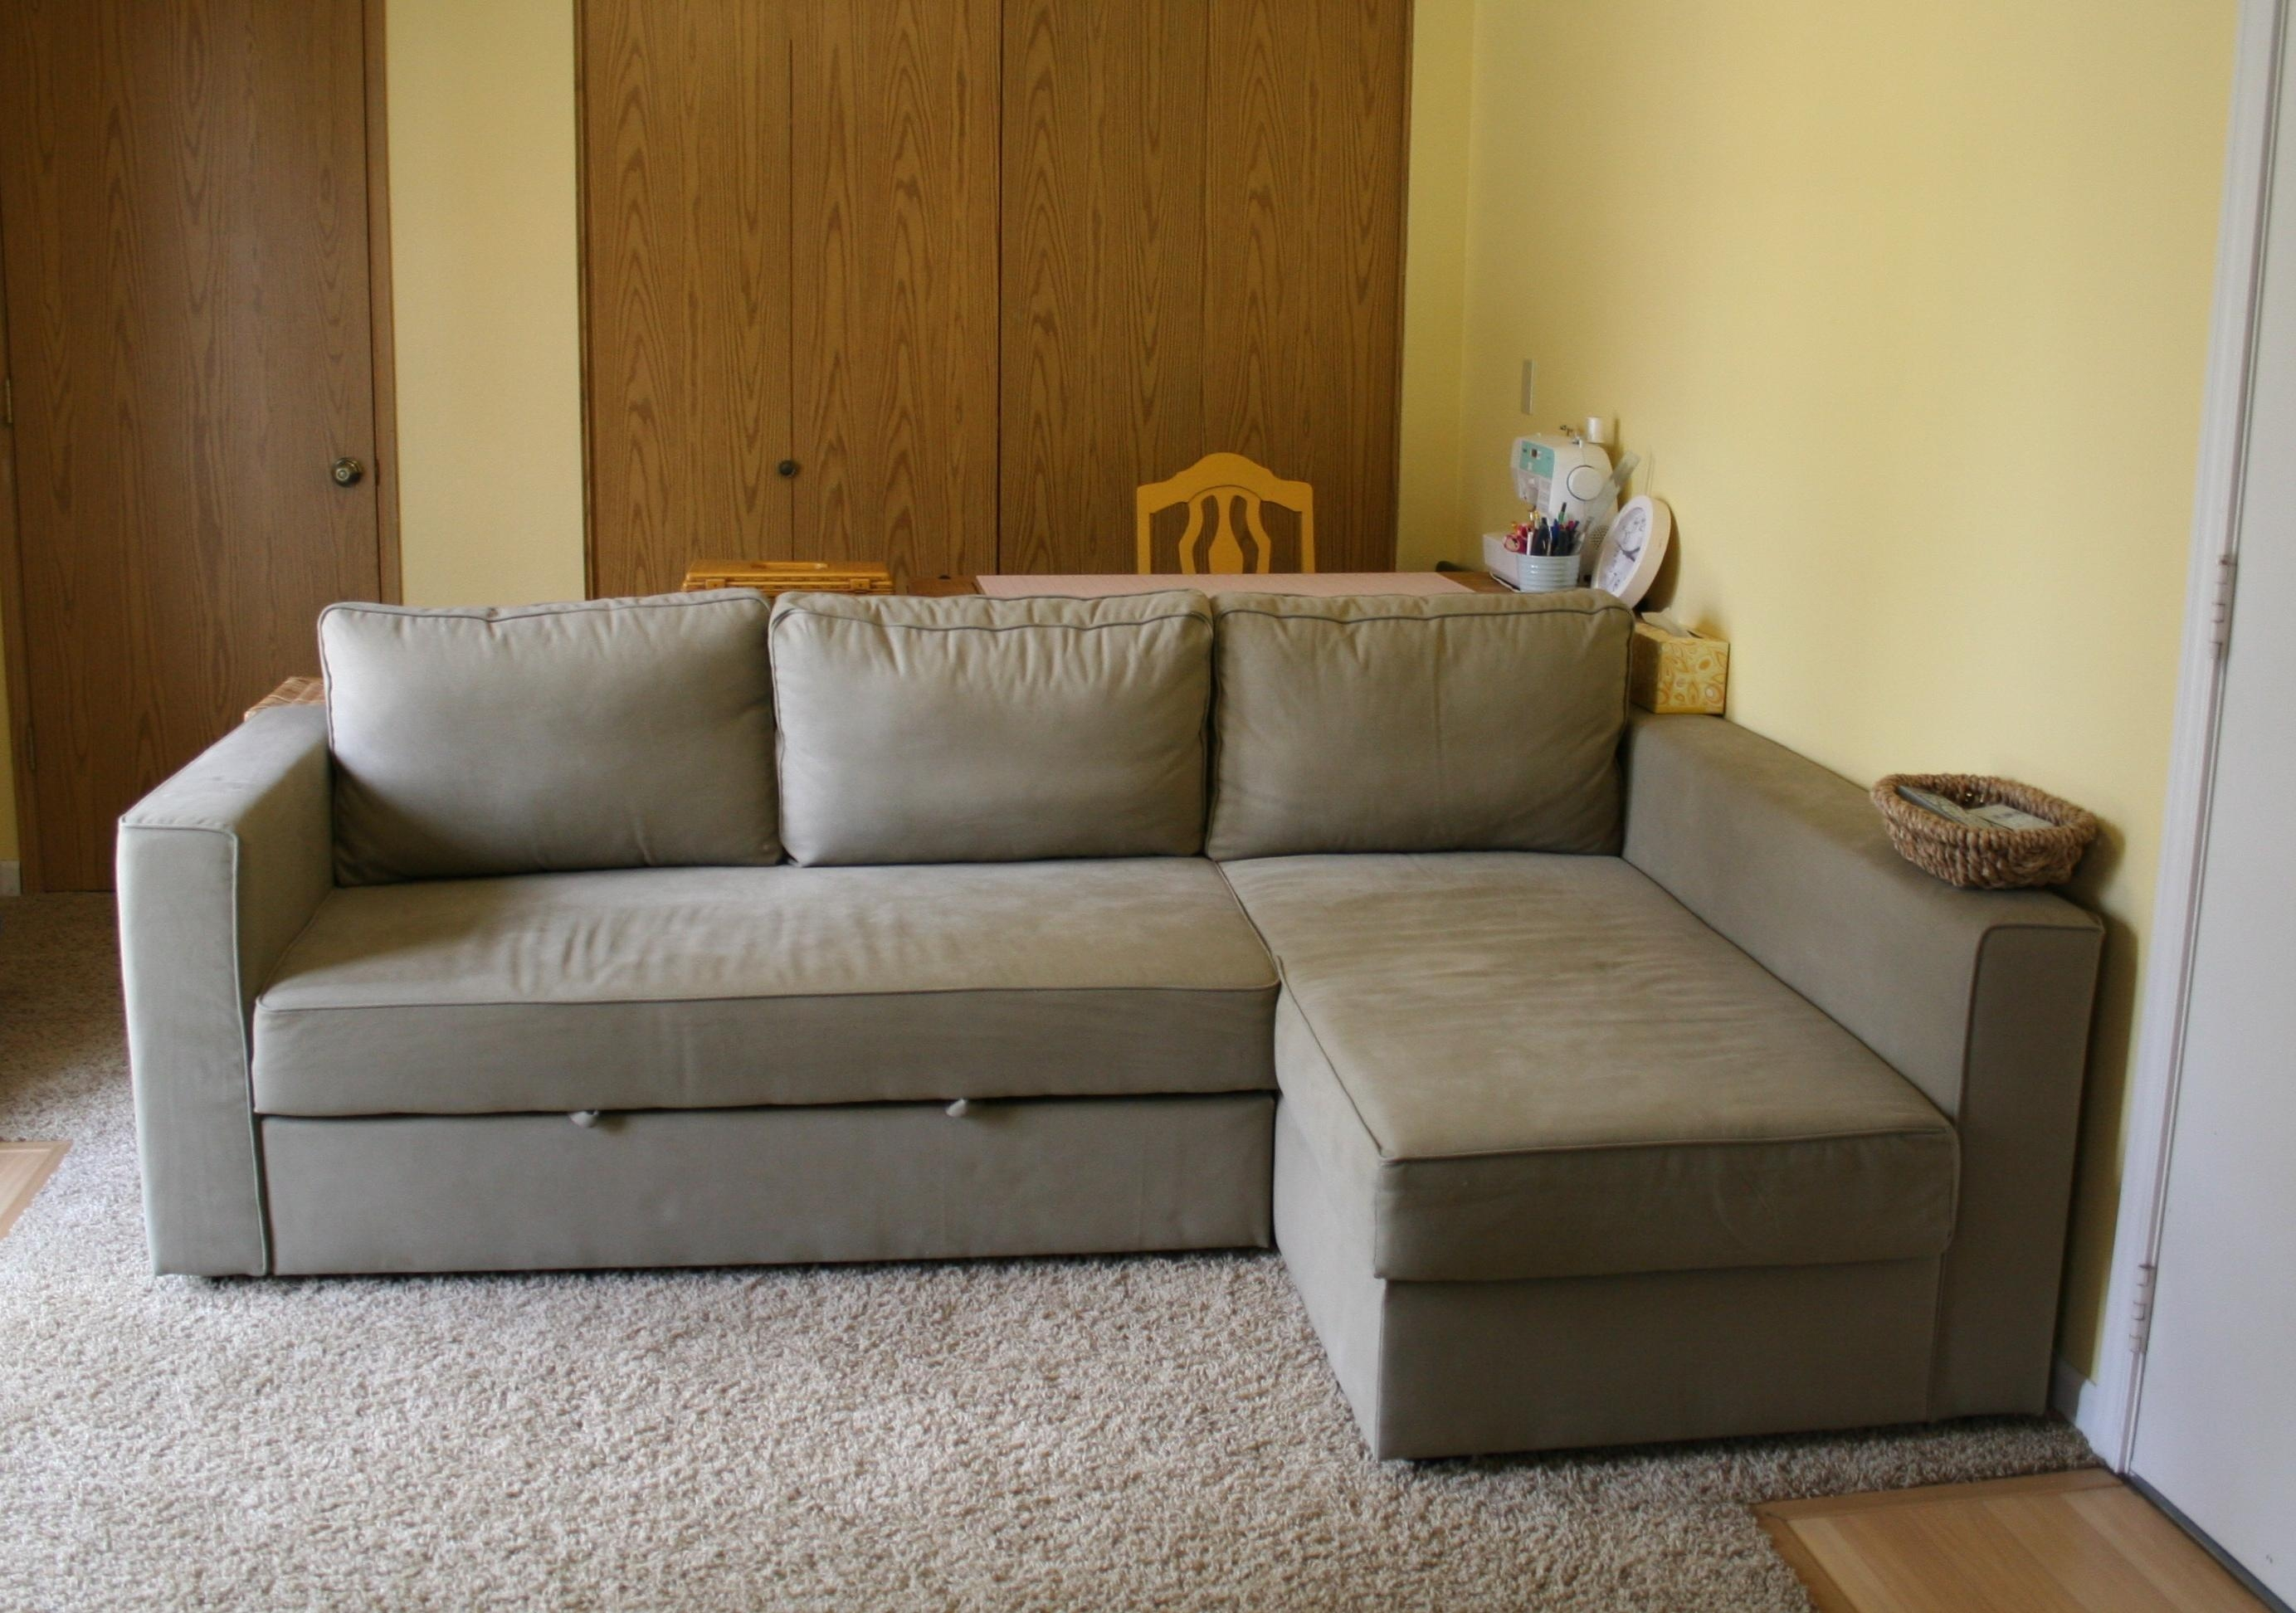 Furniture: Ikea Sofa Bed | Ikea Sofa Beds | Corner Sofa Bed Ikea In Cheap Corner Sofa Beds (View 12 of 20)